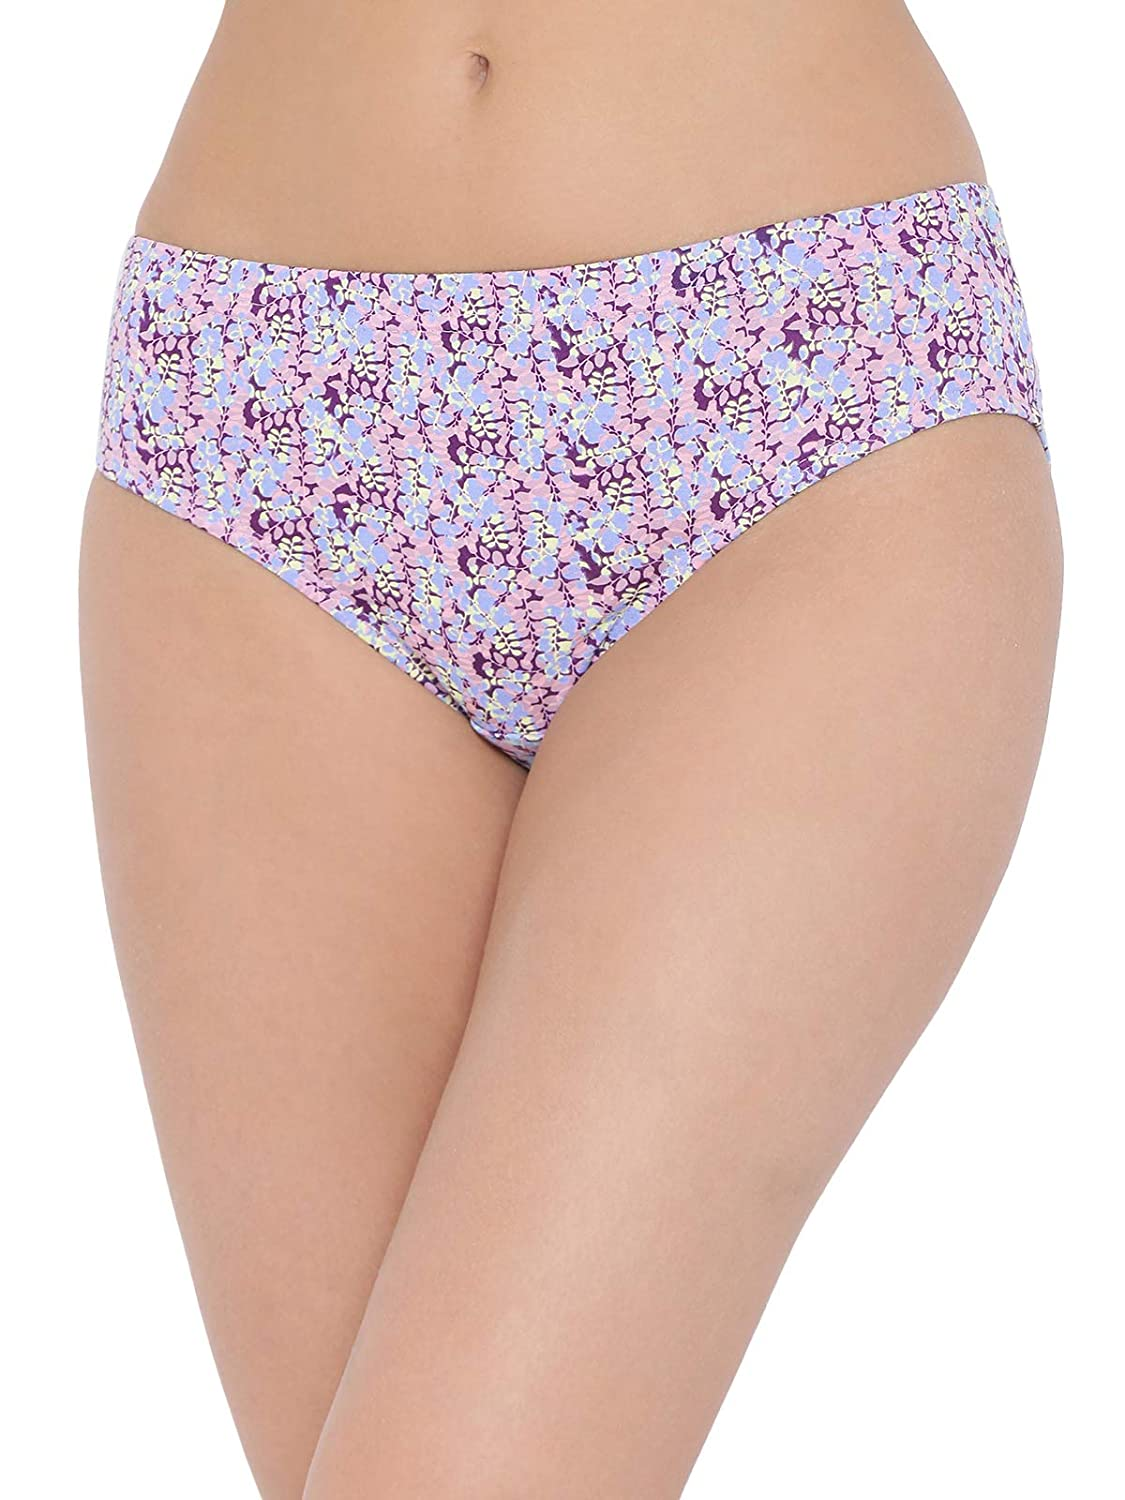 97188f6a3f0c Clovia Women's Cotton Mid Waist Floral Print Hipster Panty with Inner  Elastic: Amazon.in: Clothing & Accessories